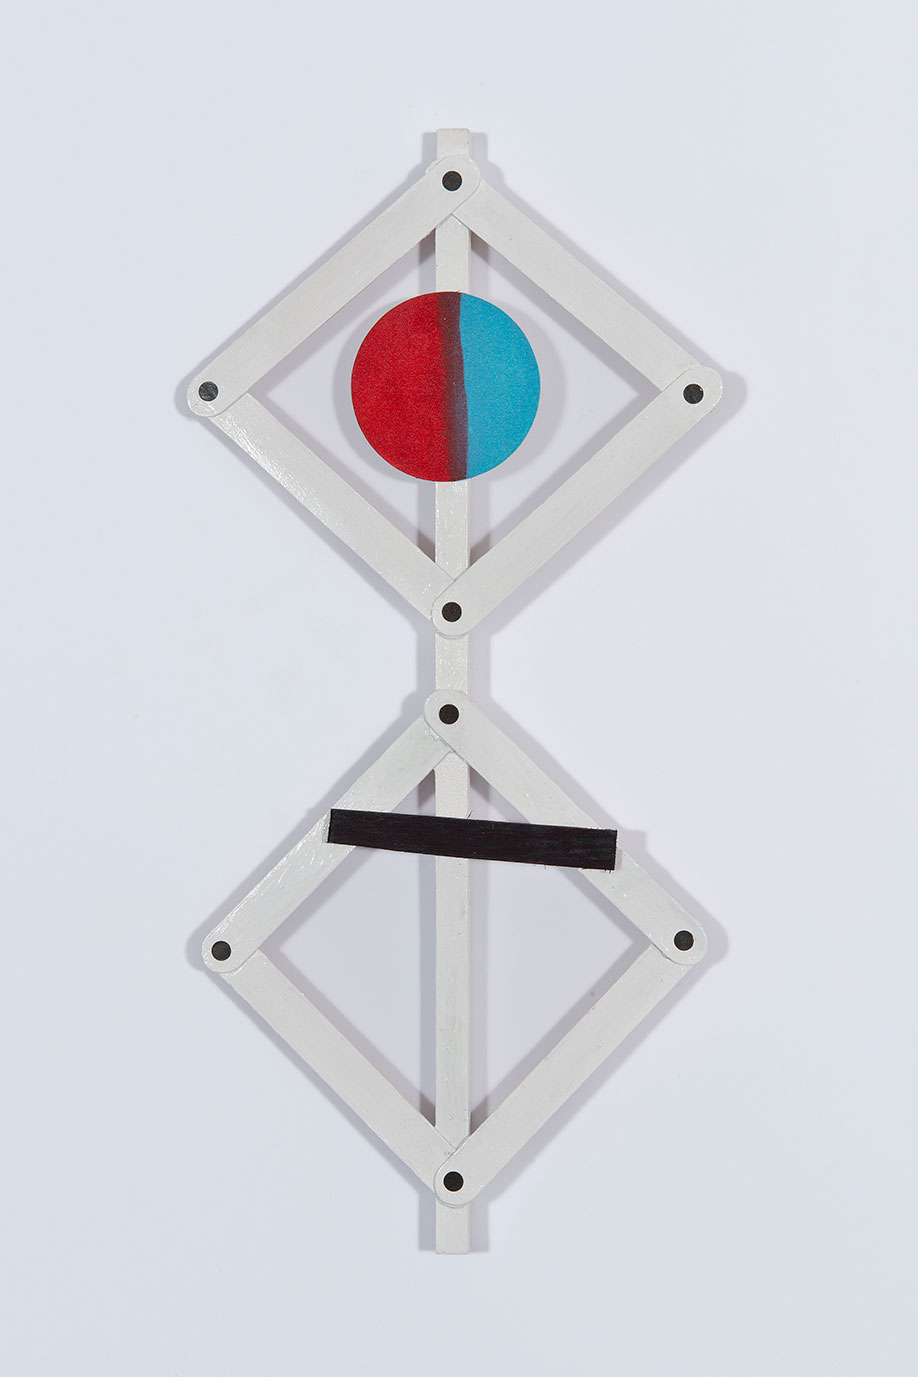 <b>Title:&nbsp;</b>Untitled<br /><b>Year:&nbsp;</b>2013<br /><b>Medium:&nbsp;</b>Enamel, ink, paper, and wood<br /><b>Size:&nbsp;</b>45 x 22 cm